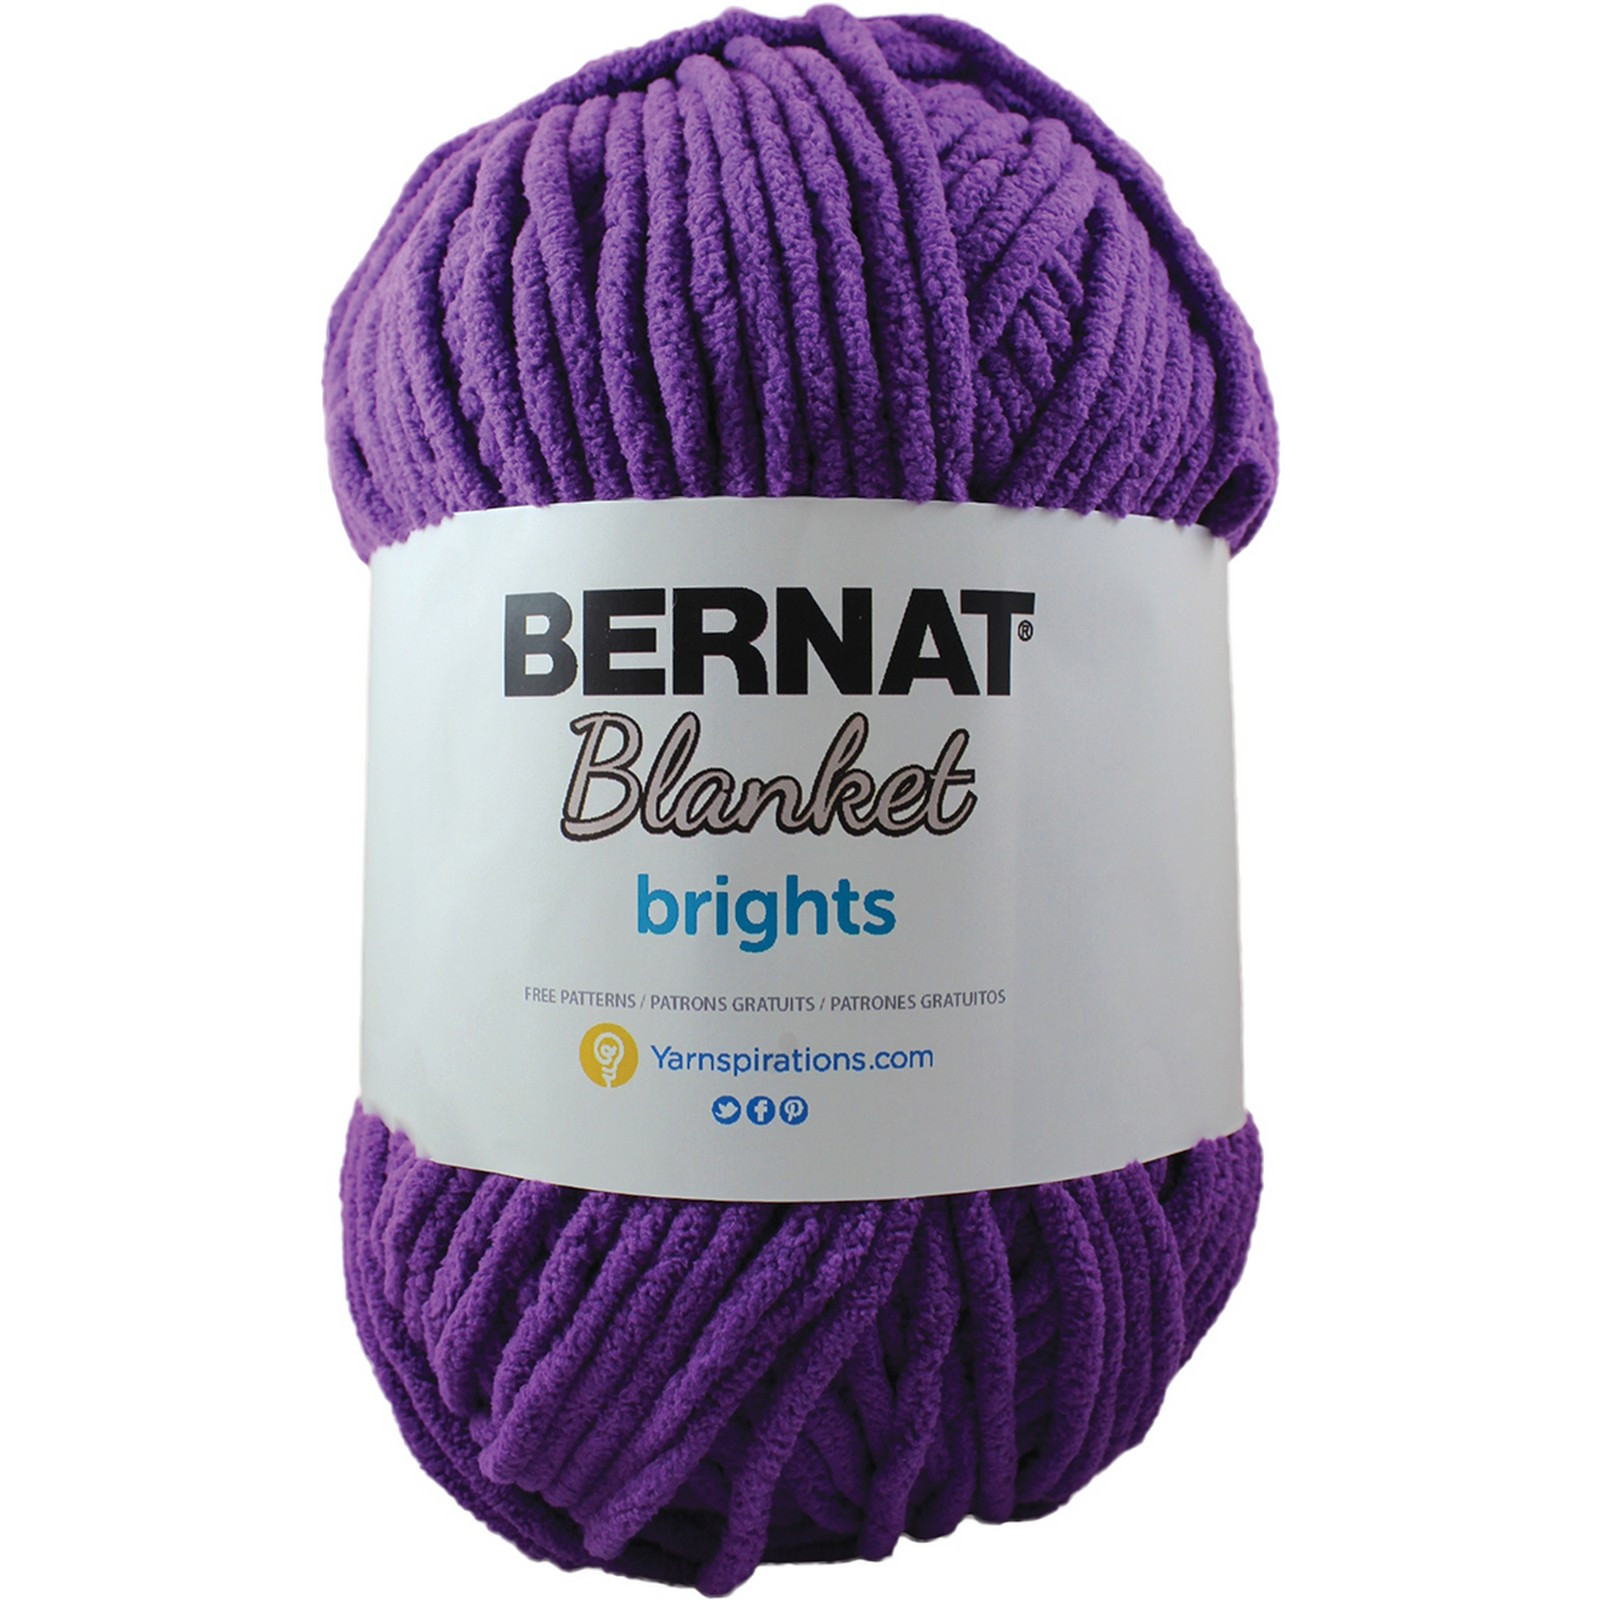 Bernat Blanket Big Ball Yarn Inspirational Bernat Blanket Brights Big Ball Yarn Pow Purple Of Innovative 41 Ideas Bernat Blanket Big Ball Yarn